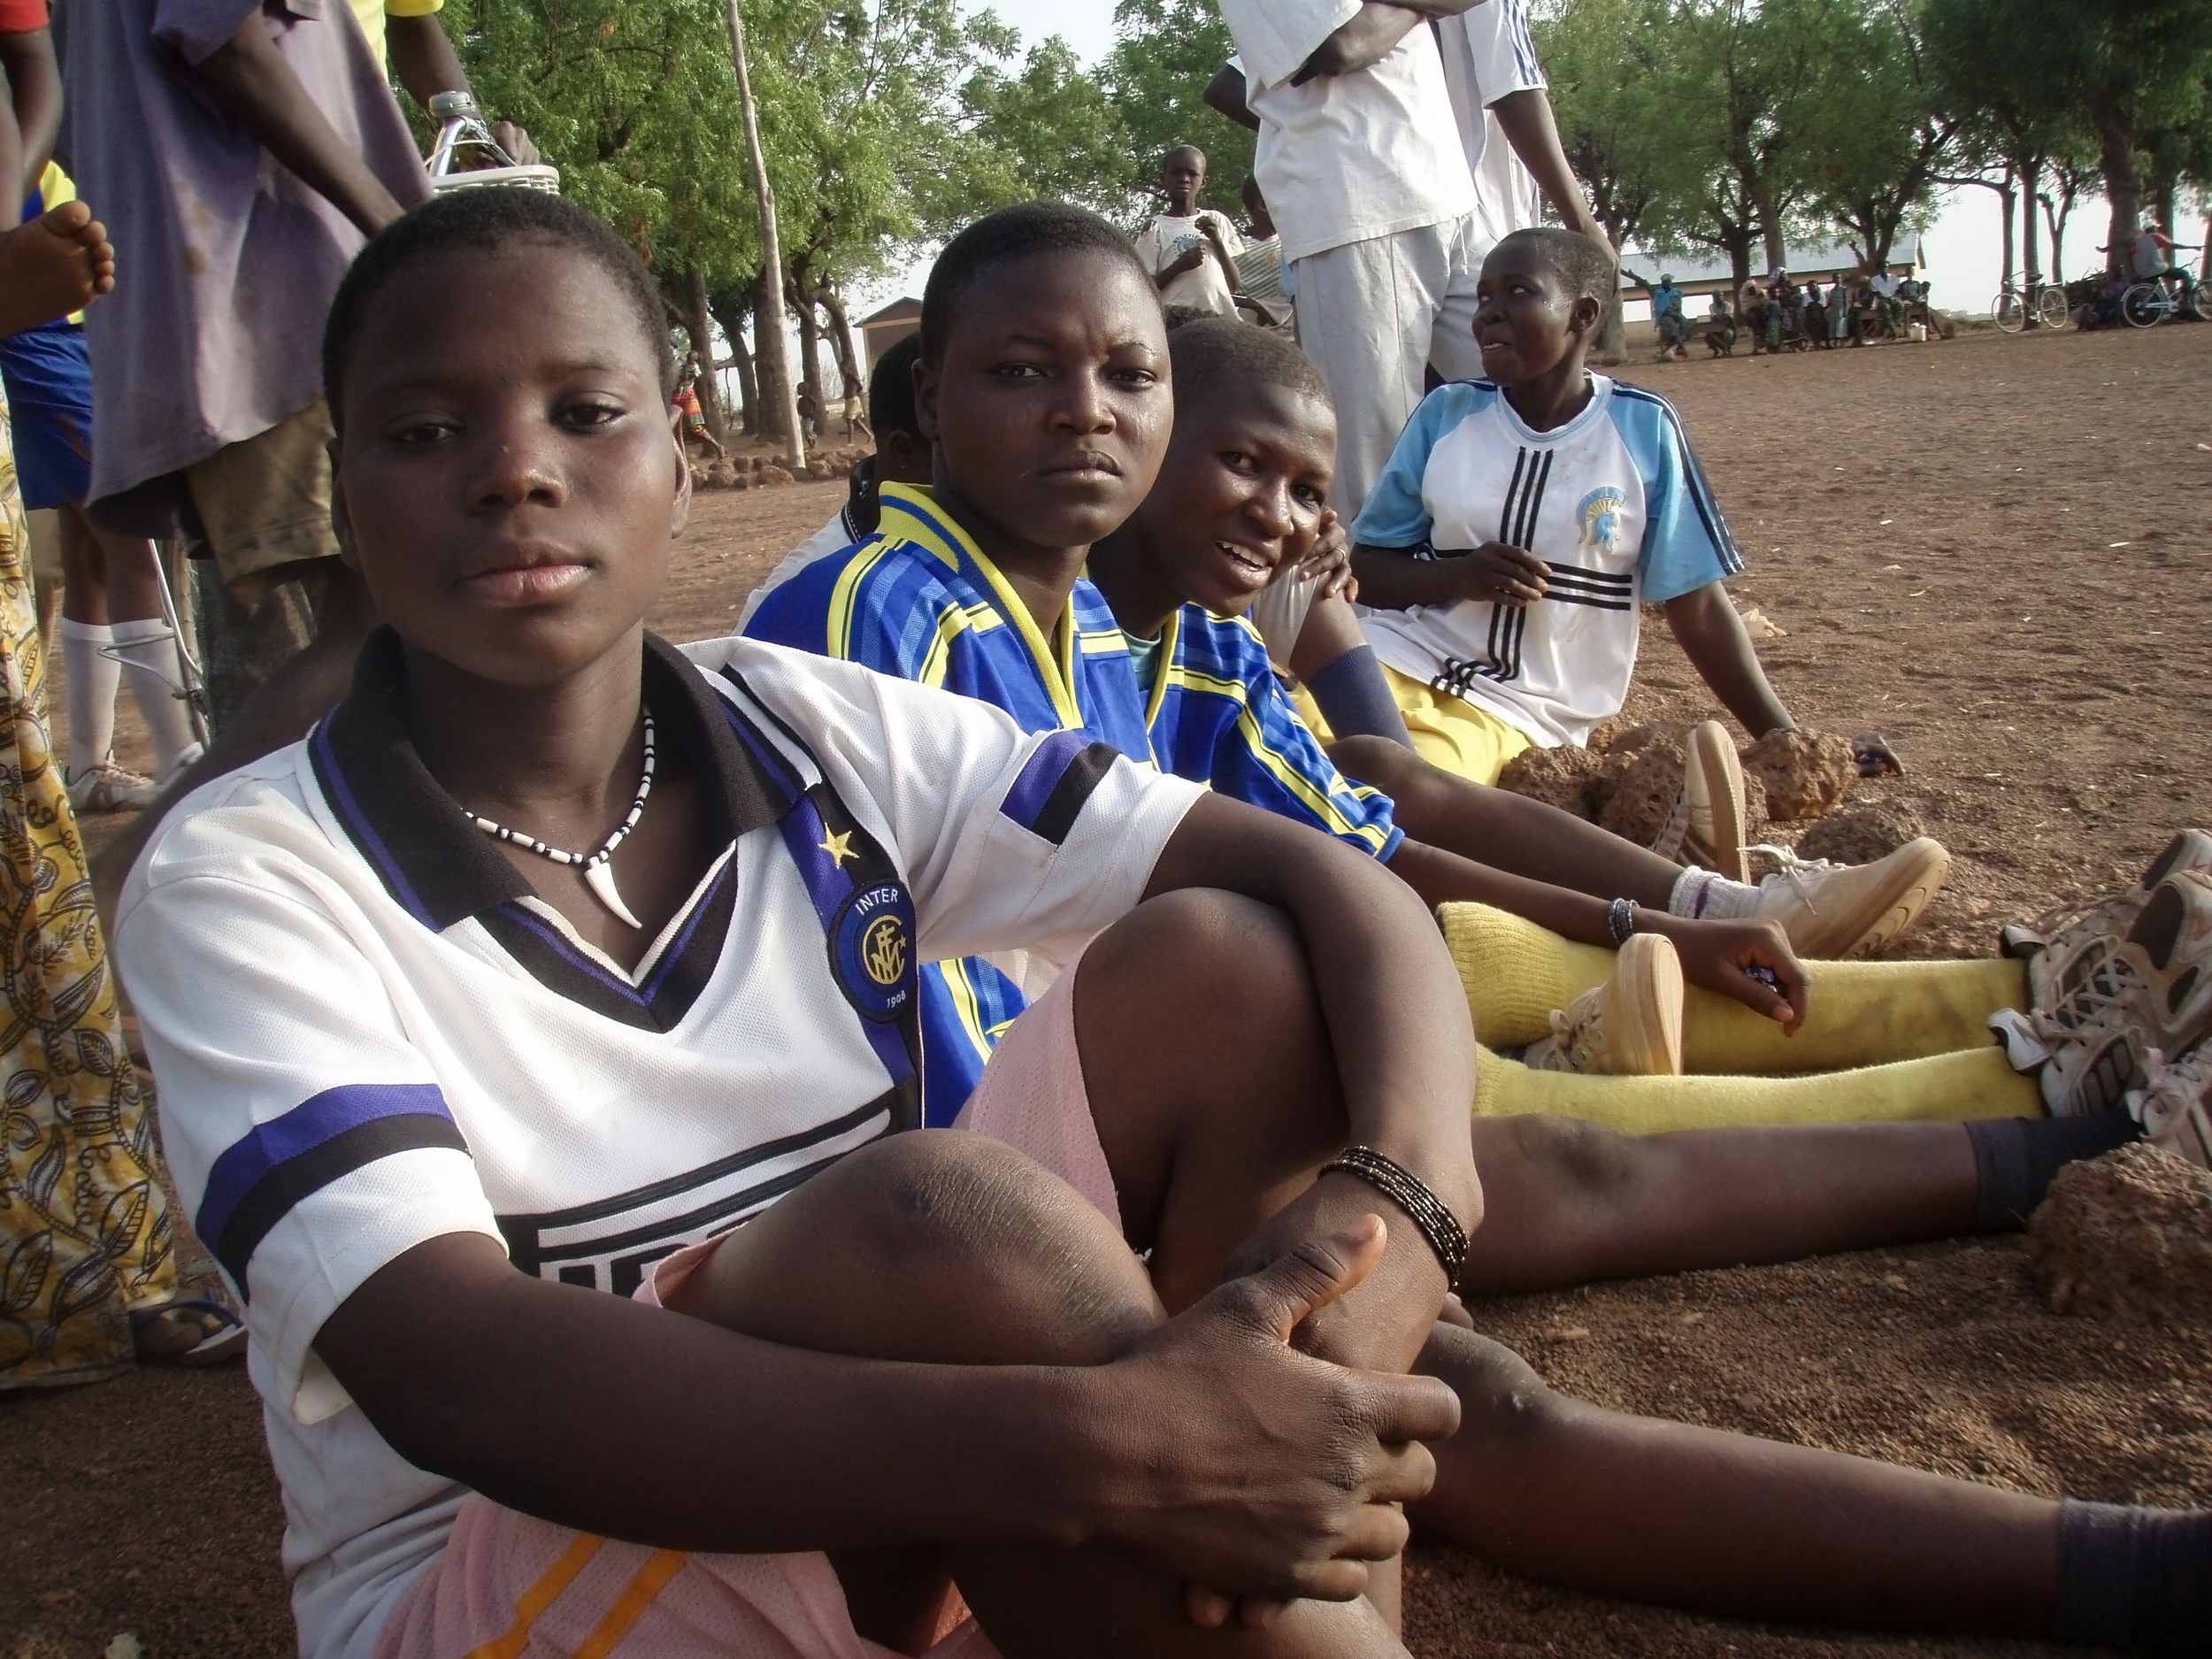 Students at a girls' soccer tournament during Sagbiebou's first International Women's Day event in 2008.